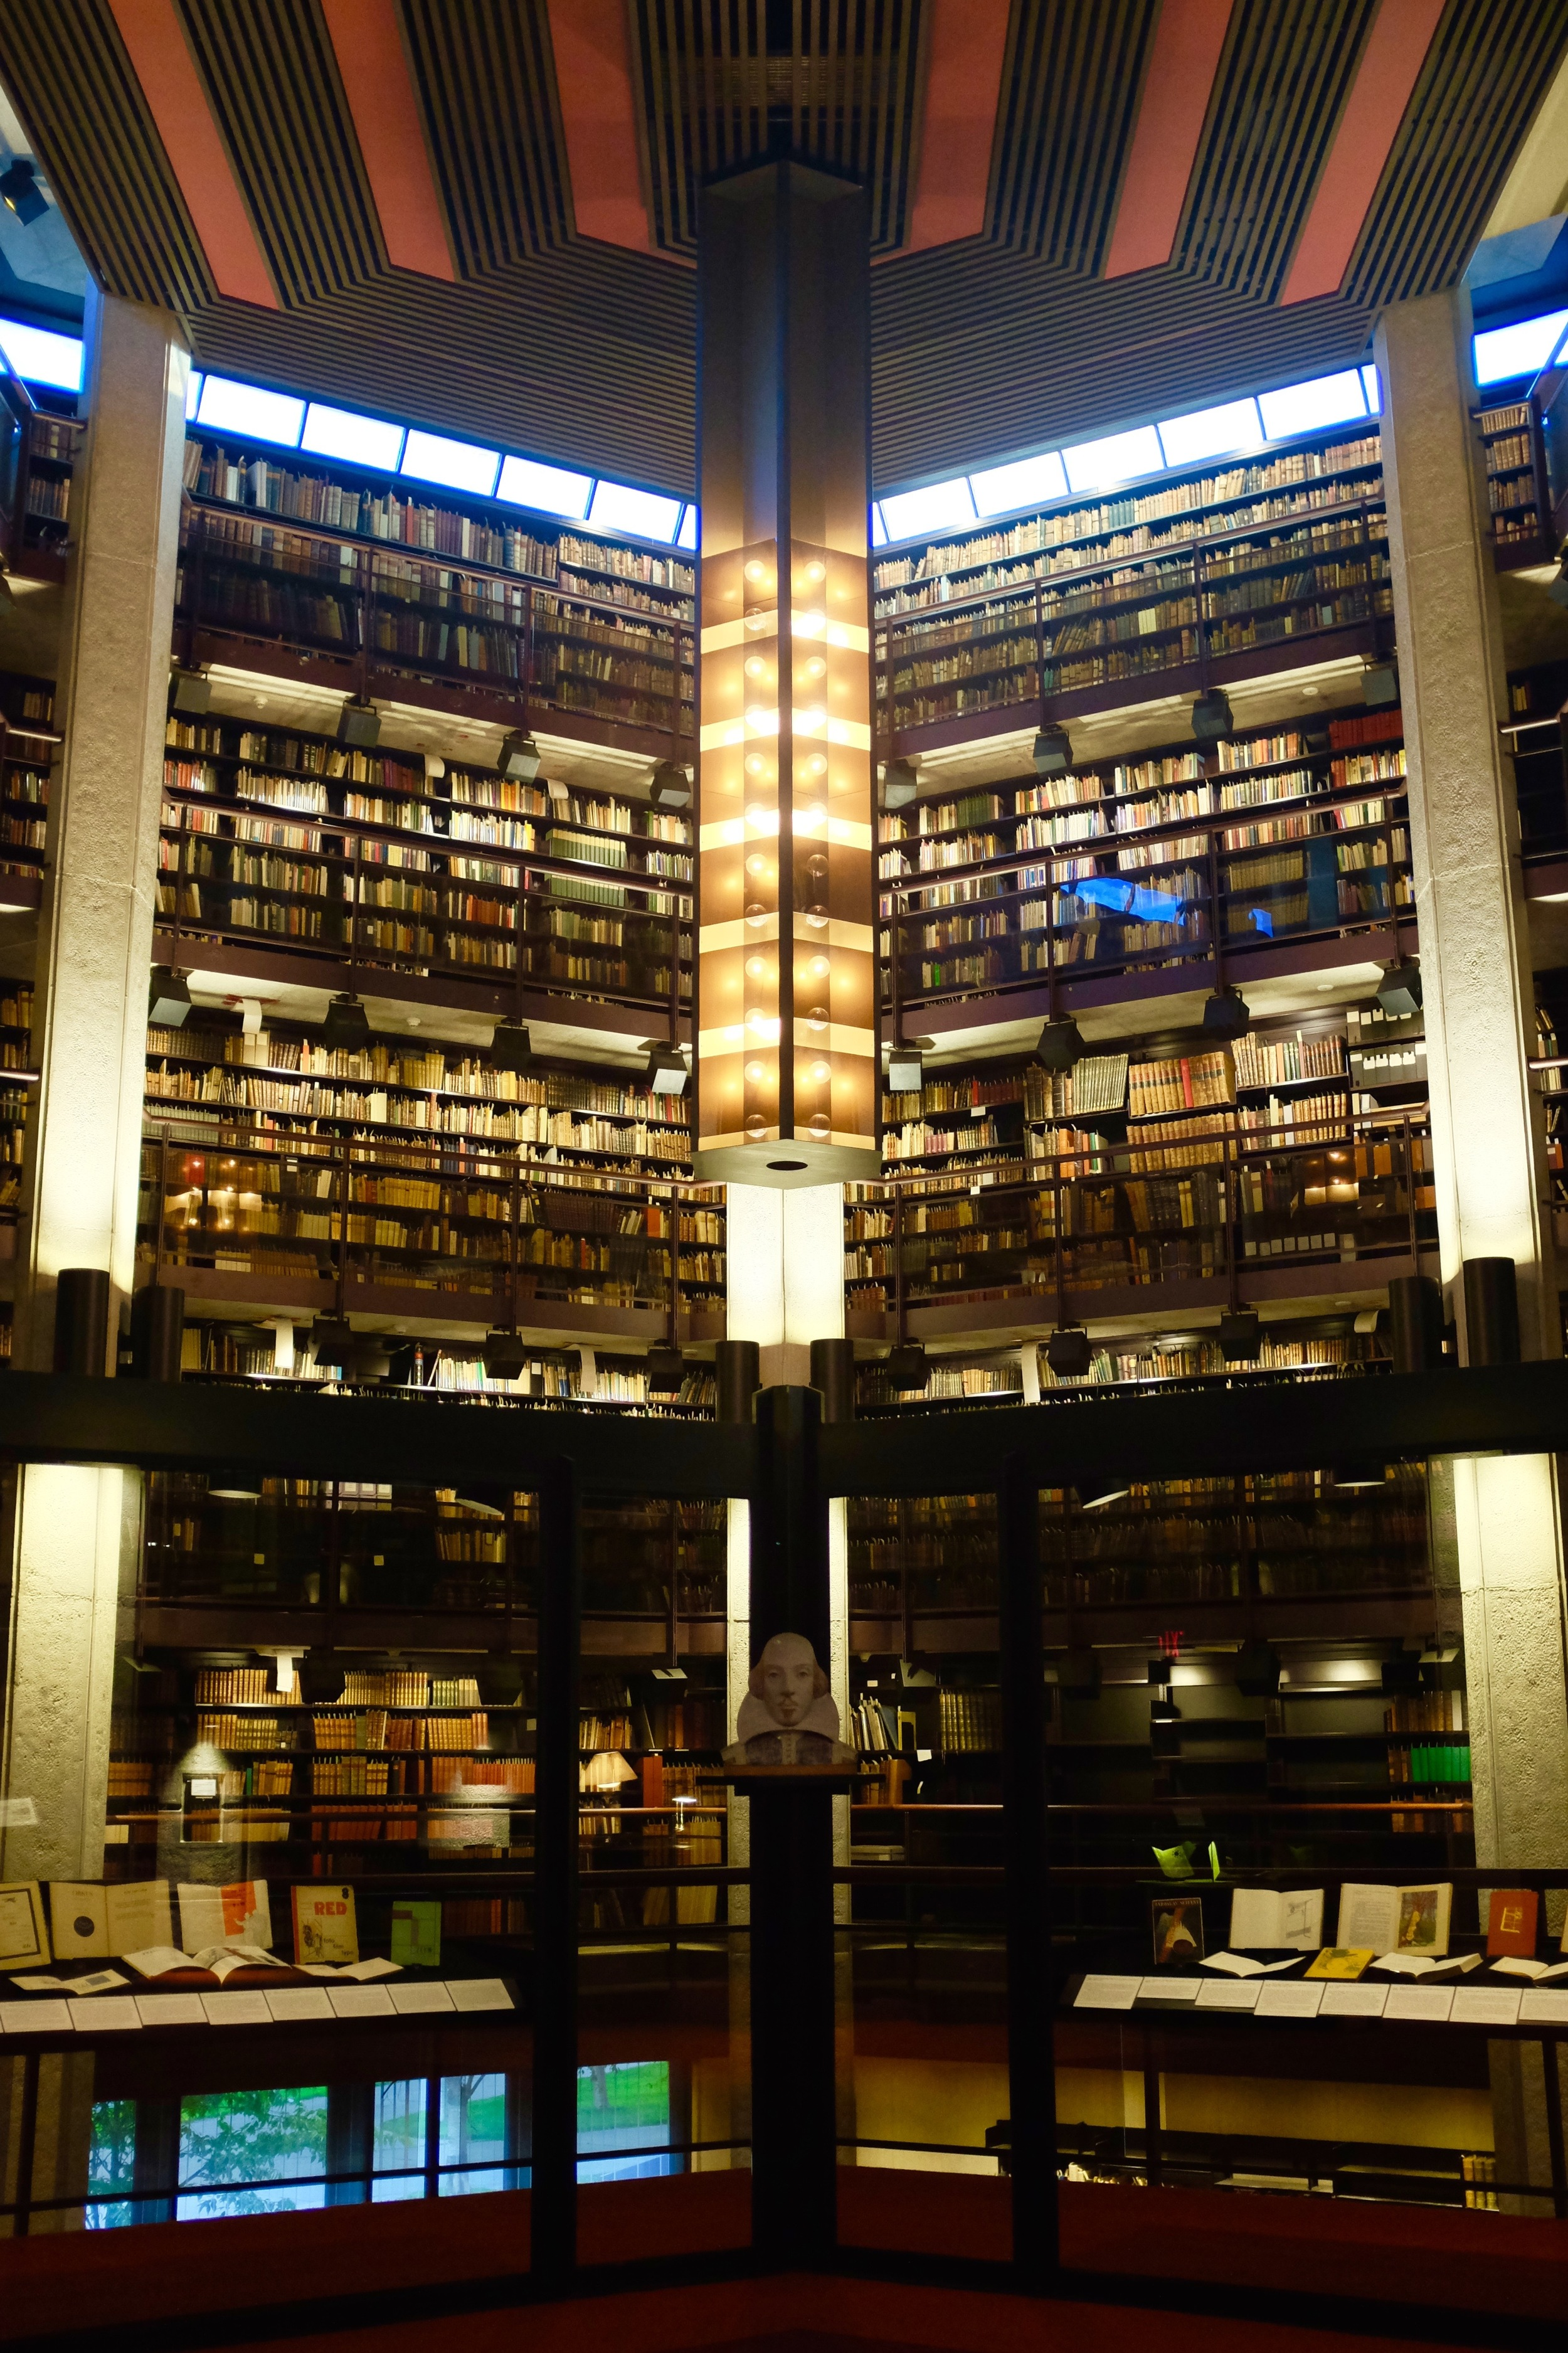 The Fisher Library's rare books and manuscripts collection. Photo by J Austria